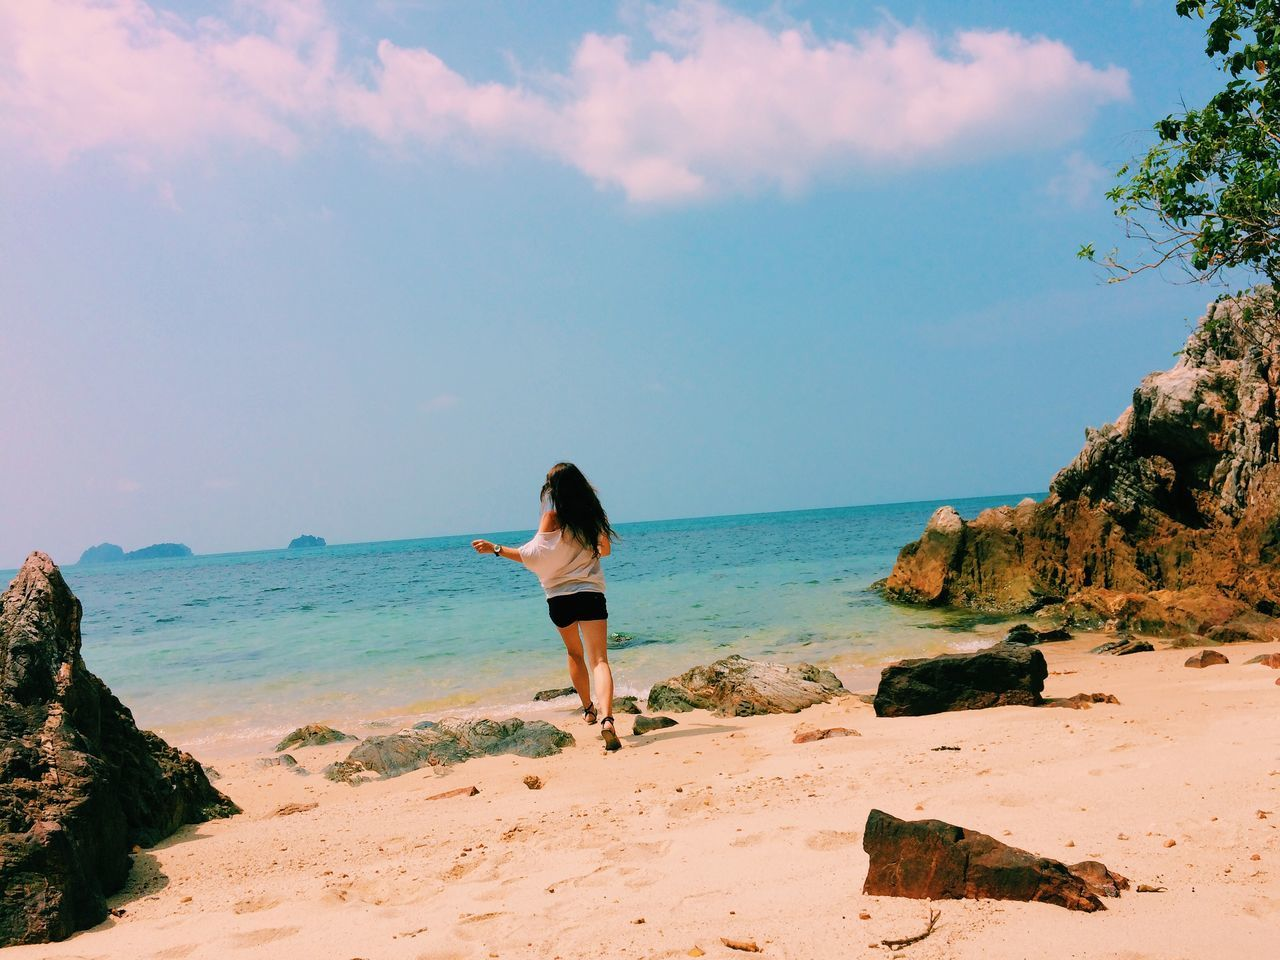 IPS2015Summer Sunny Sunny Day Beach Beautiful Beautiful Nature Paradise Girl Happiness Running